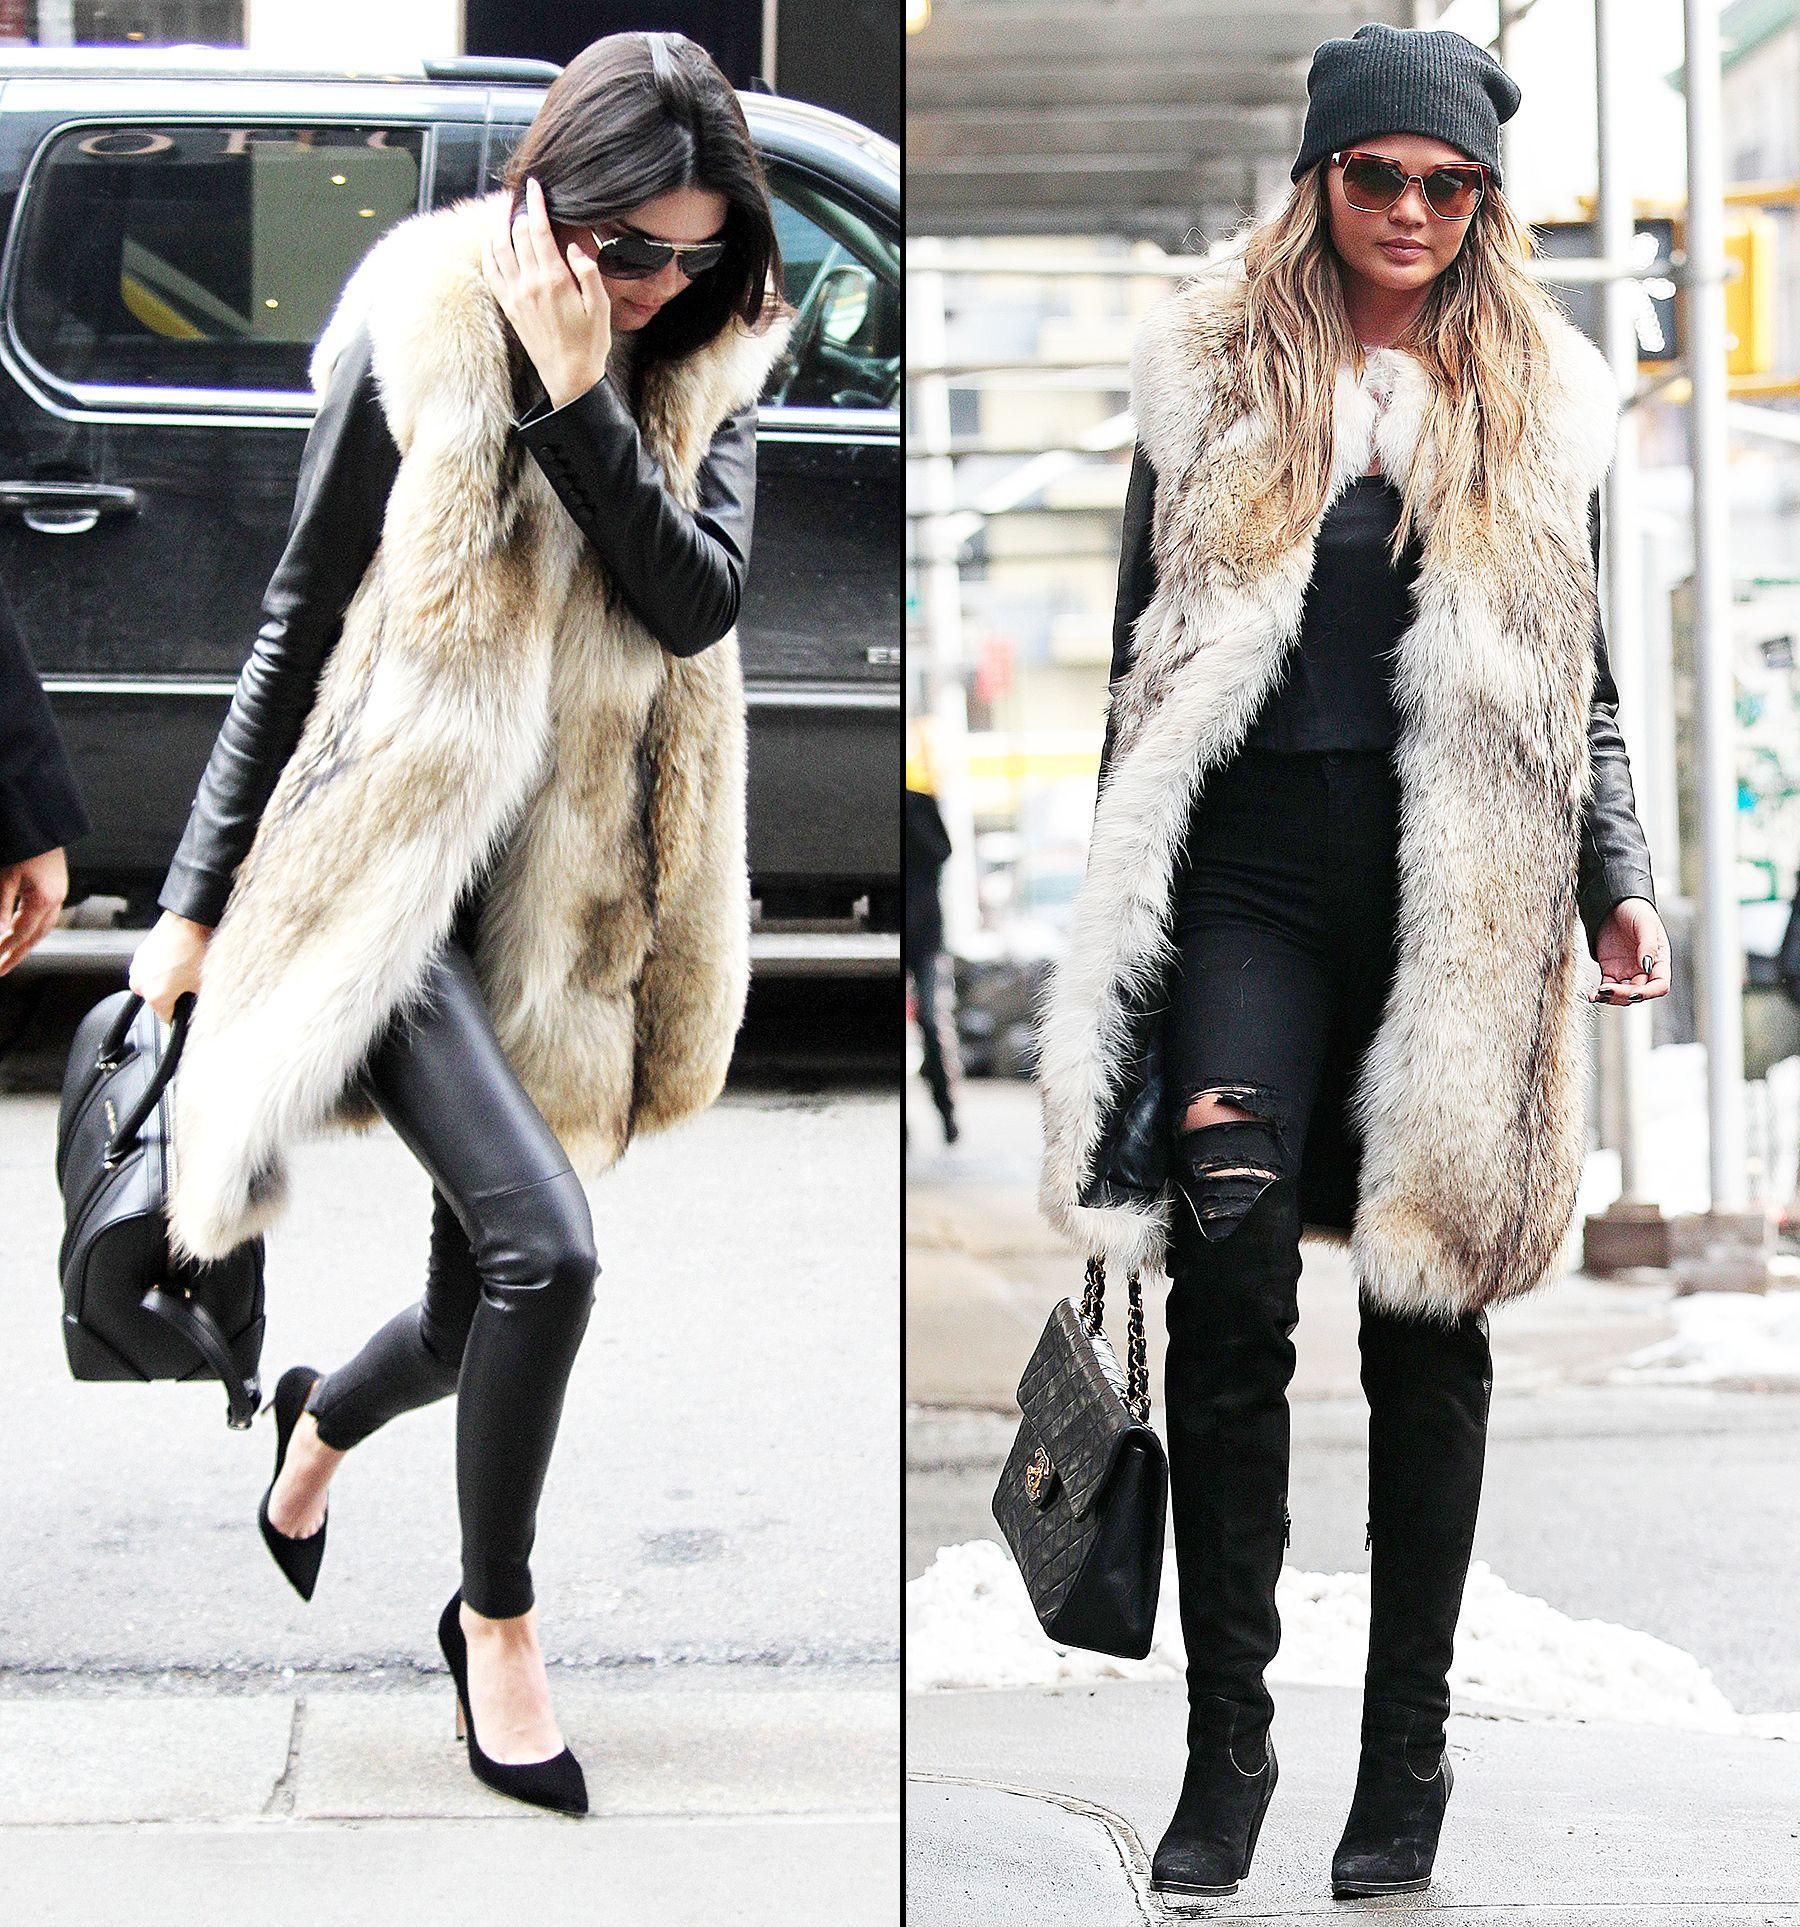 Kendall Jenner, Chrissy Teigen Wear Same Fur Coat: Photos | Retail ...